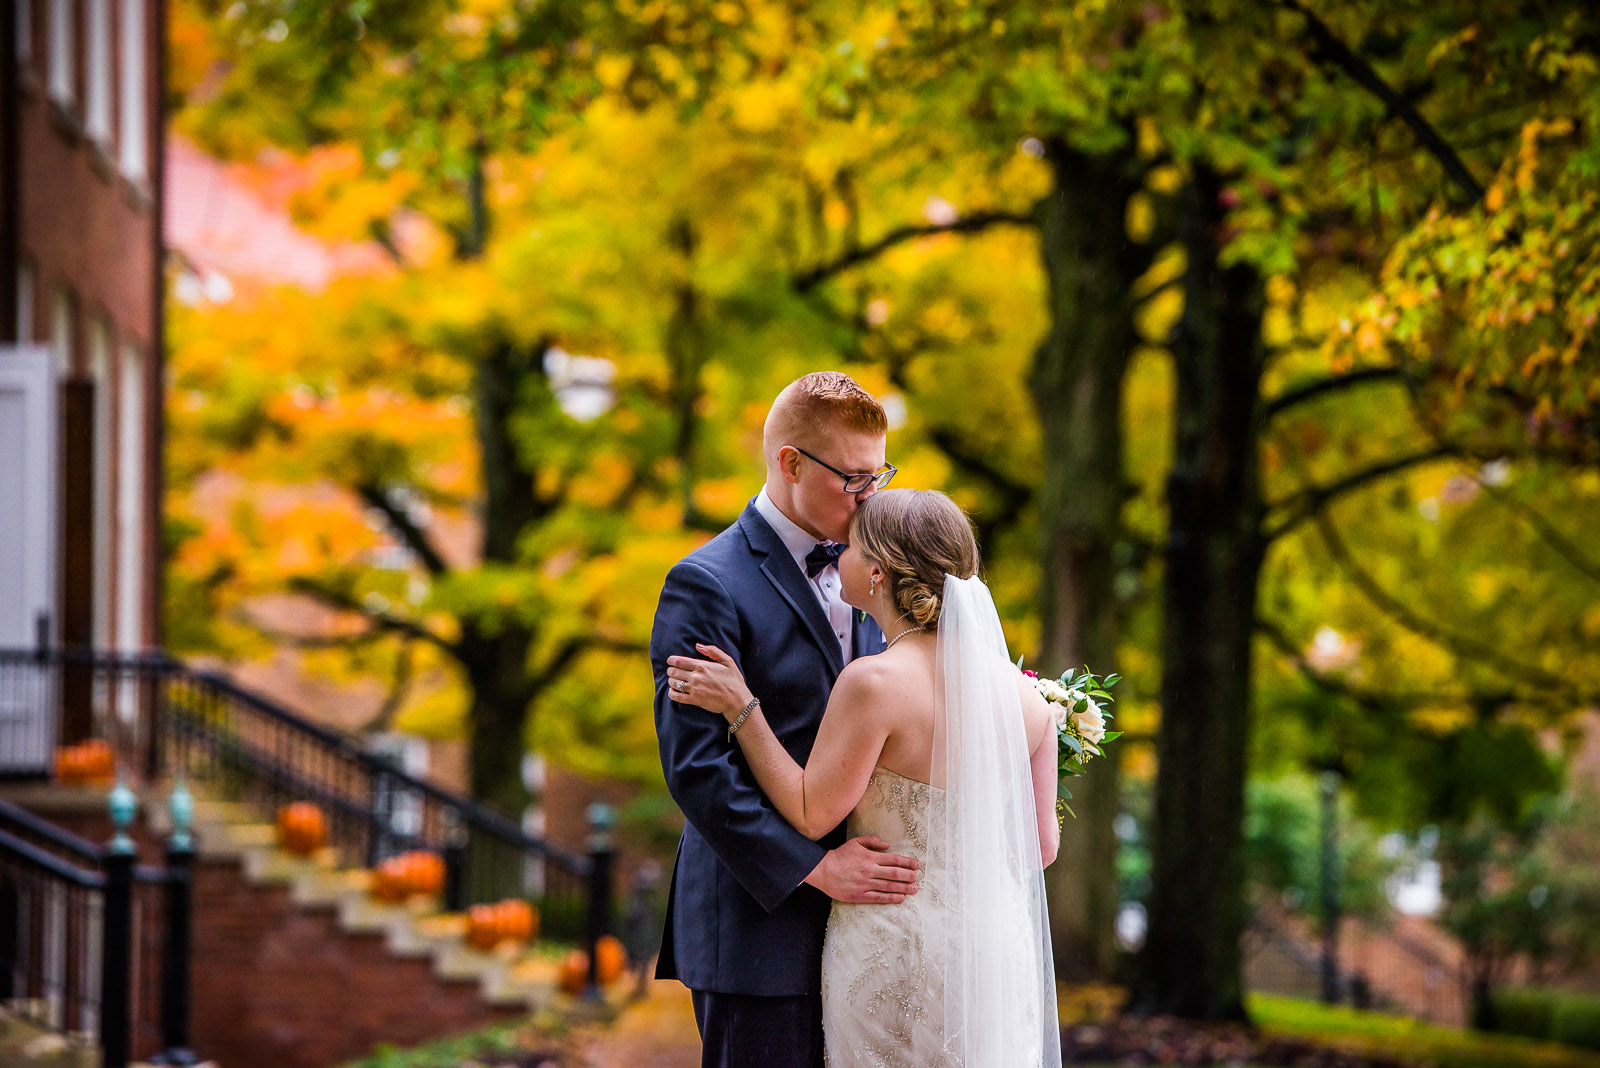 Eric_and_Christy_Photography_Blog_Wedding_Erica_Mike-48